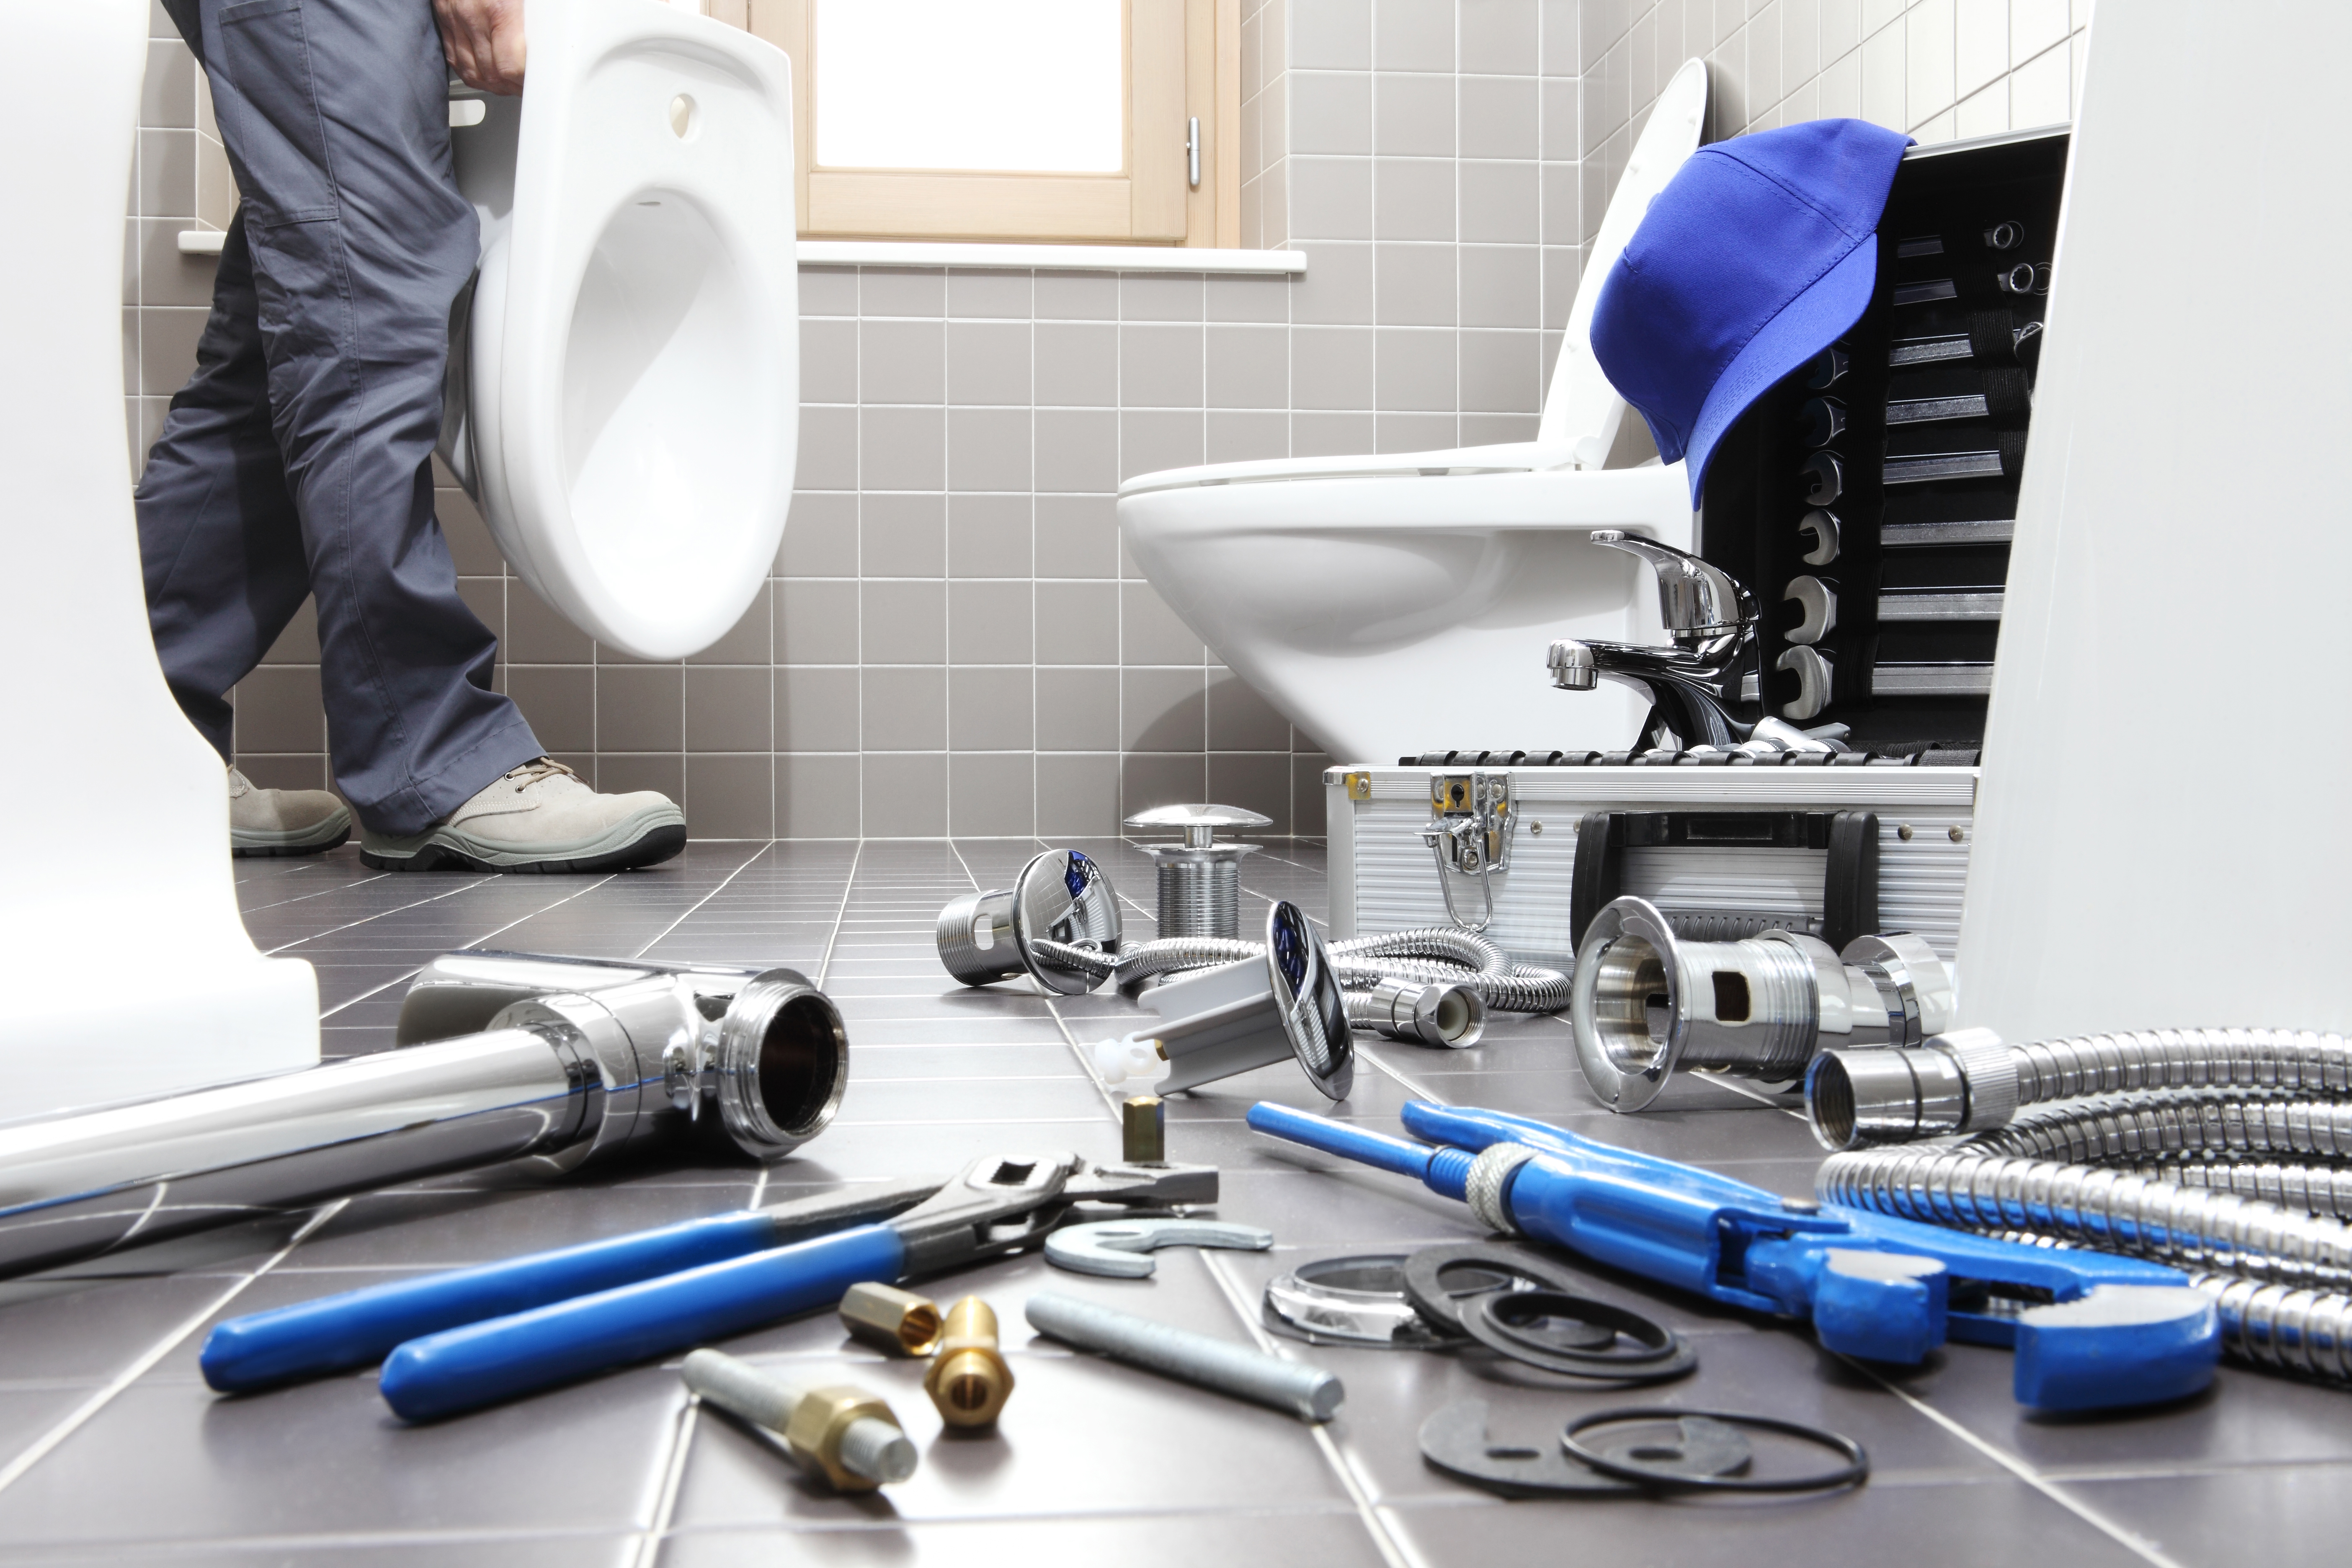 How to Fix a Toilet That Takes Too Long to Fill | Home